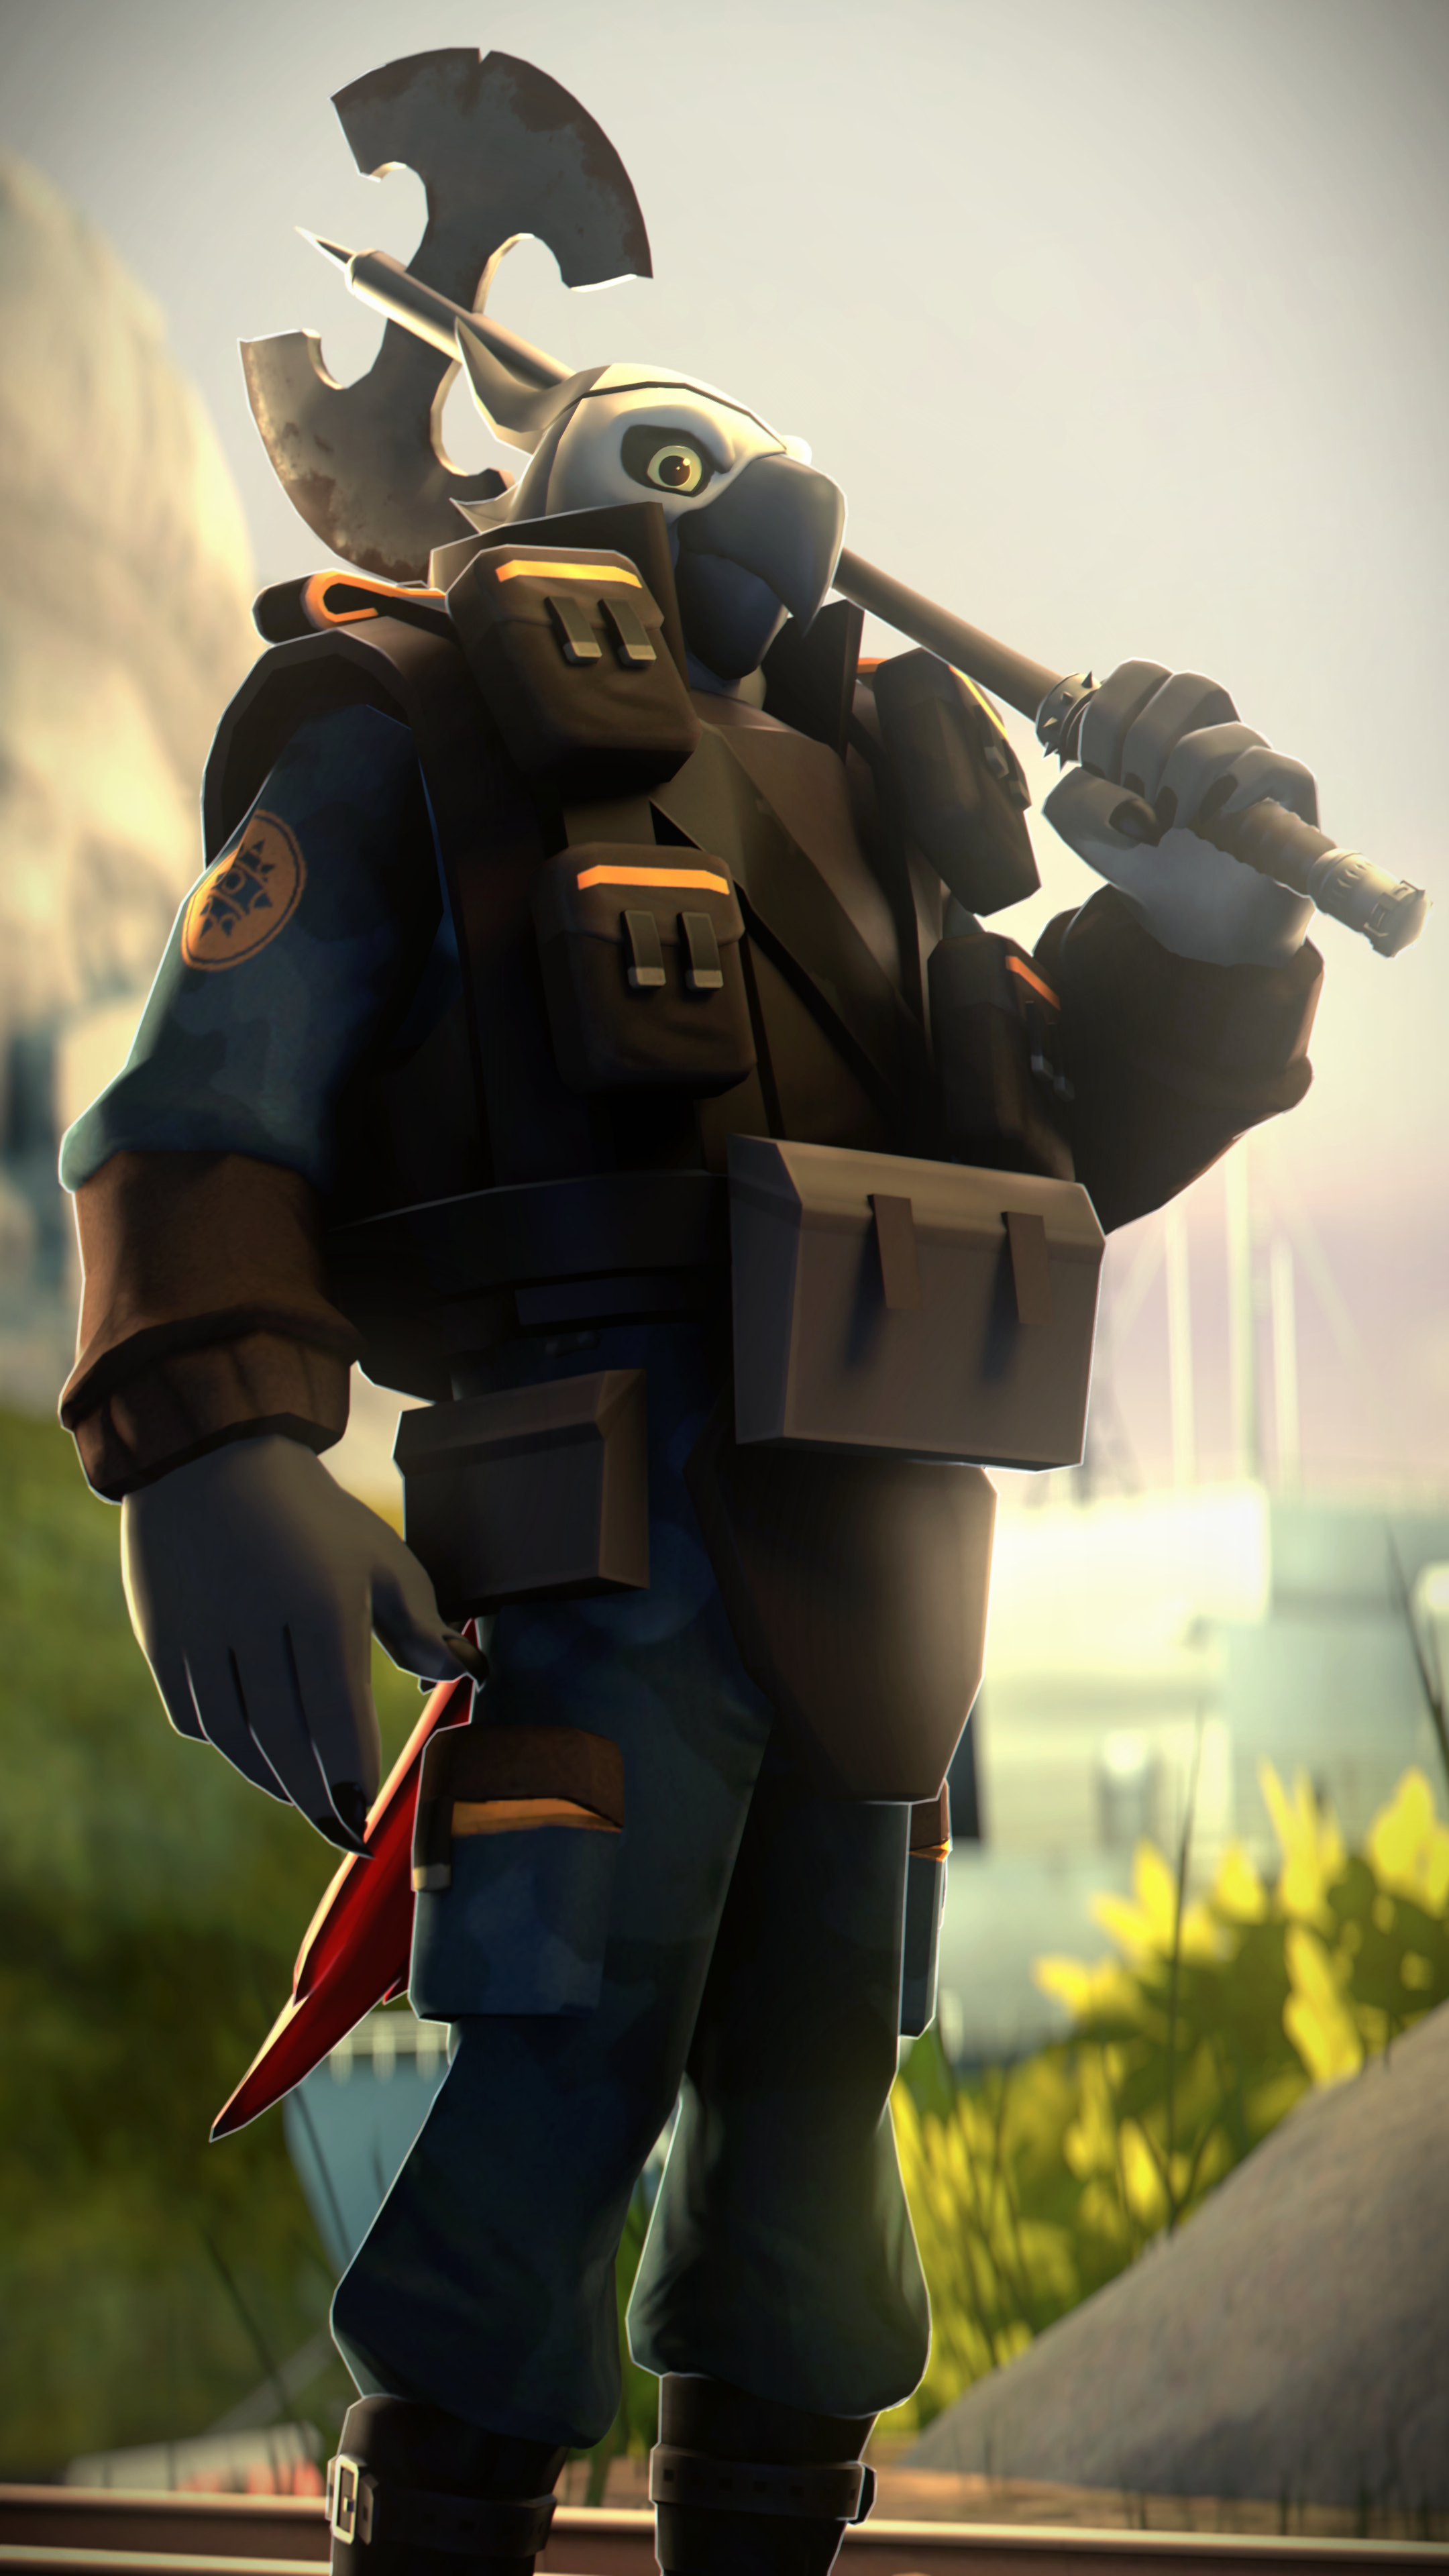 general_grey_by_kristergs-dbhexd0.png